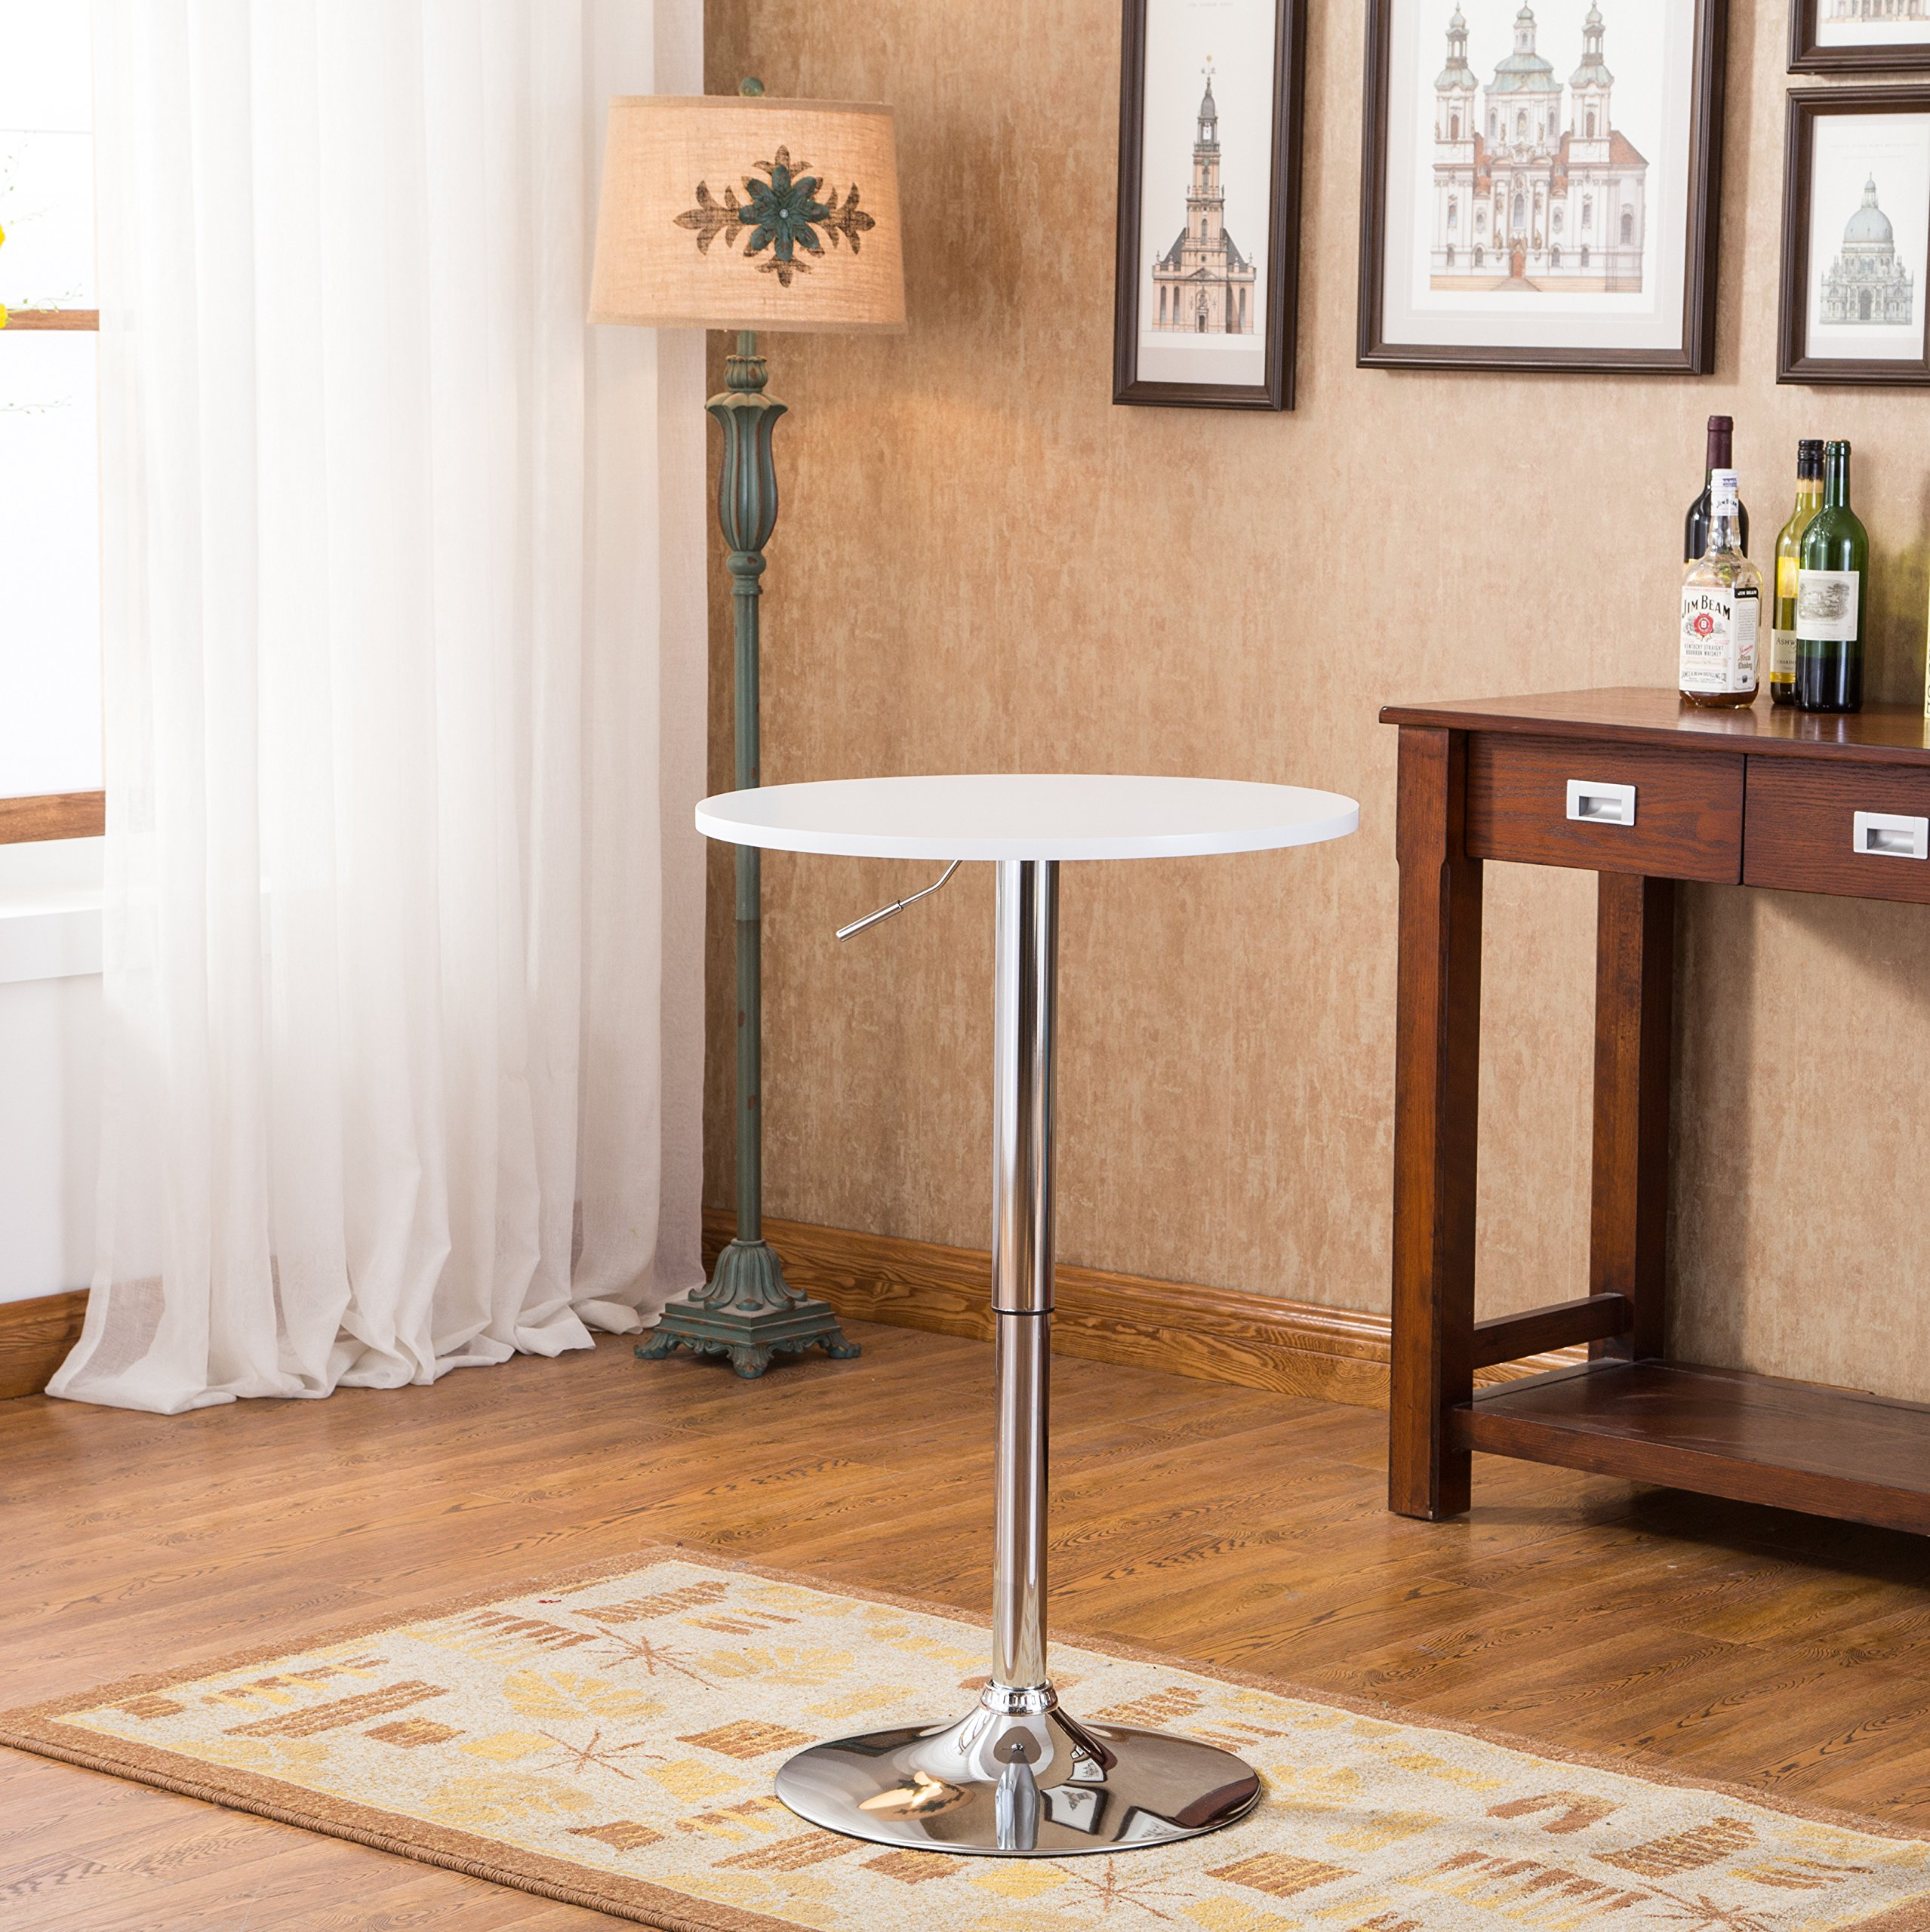 Roundhill Furniture Adjustable Height Wood and Chrome Metal Bar Table, White by Roundhill